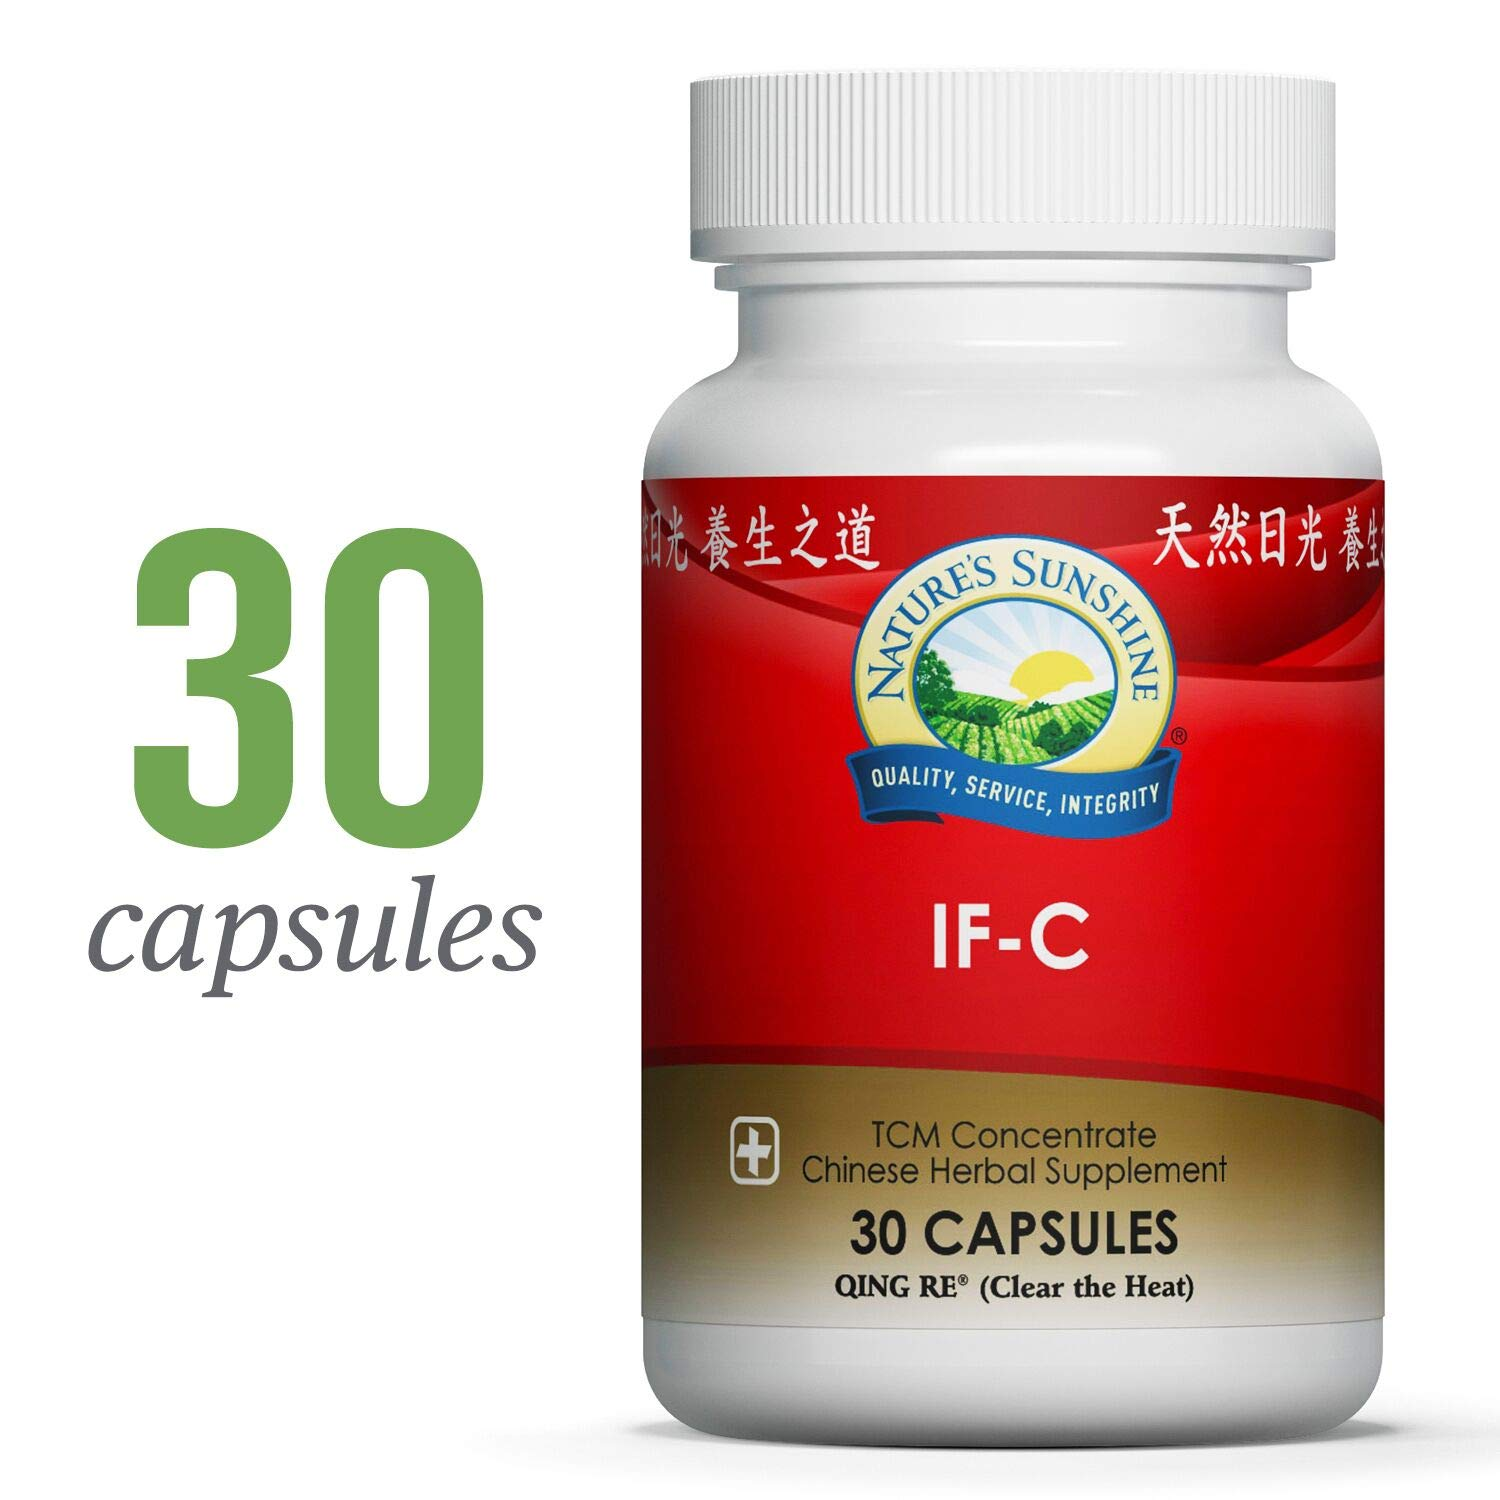 Nature s Sunshine IF-C, TCM Concentrate, 30 Capsules Blend of Chinese Herbs That Nourish The Structural and Immune Systems by Stimulating Blood Flow and Helping to Eliminate Toxins